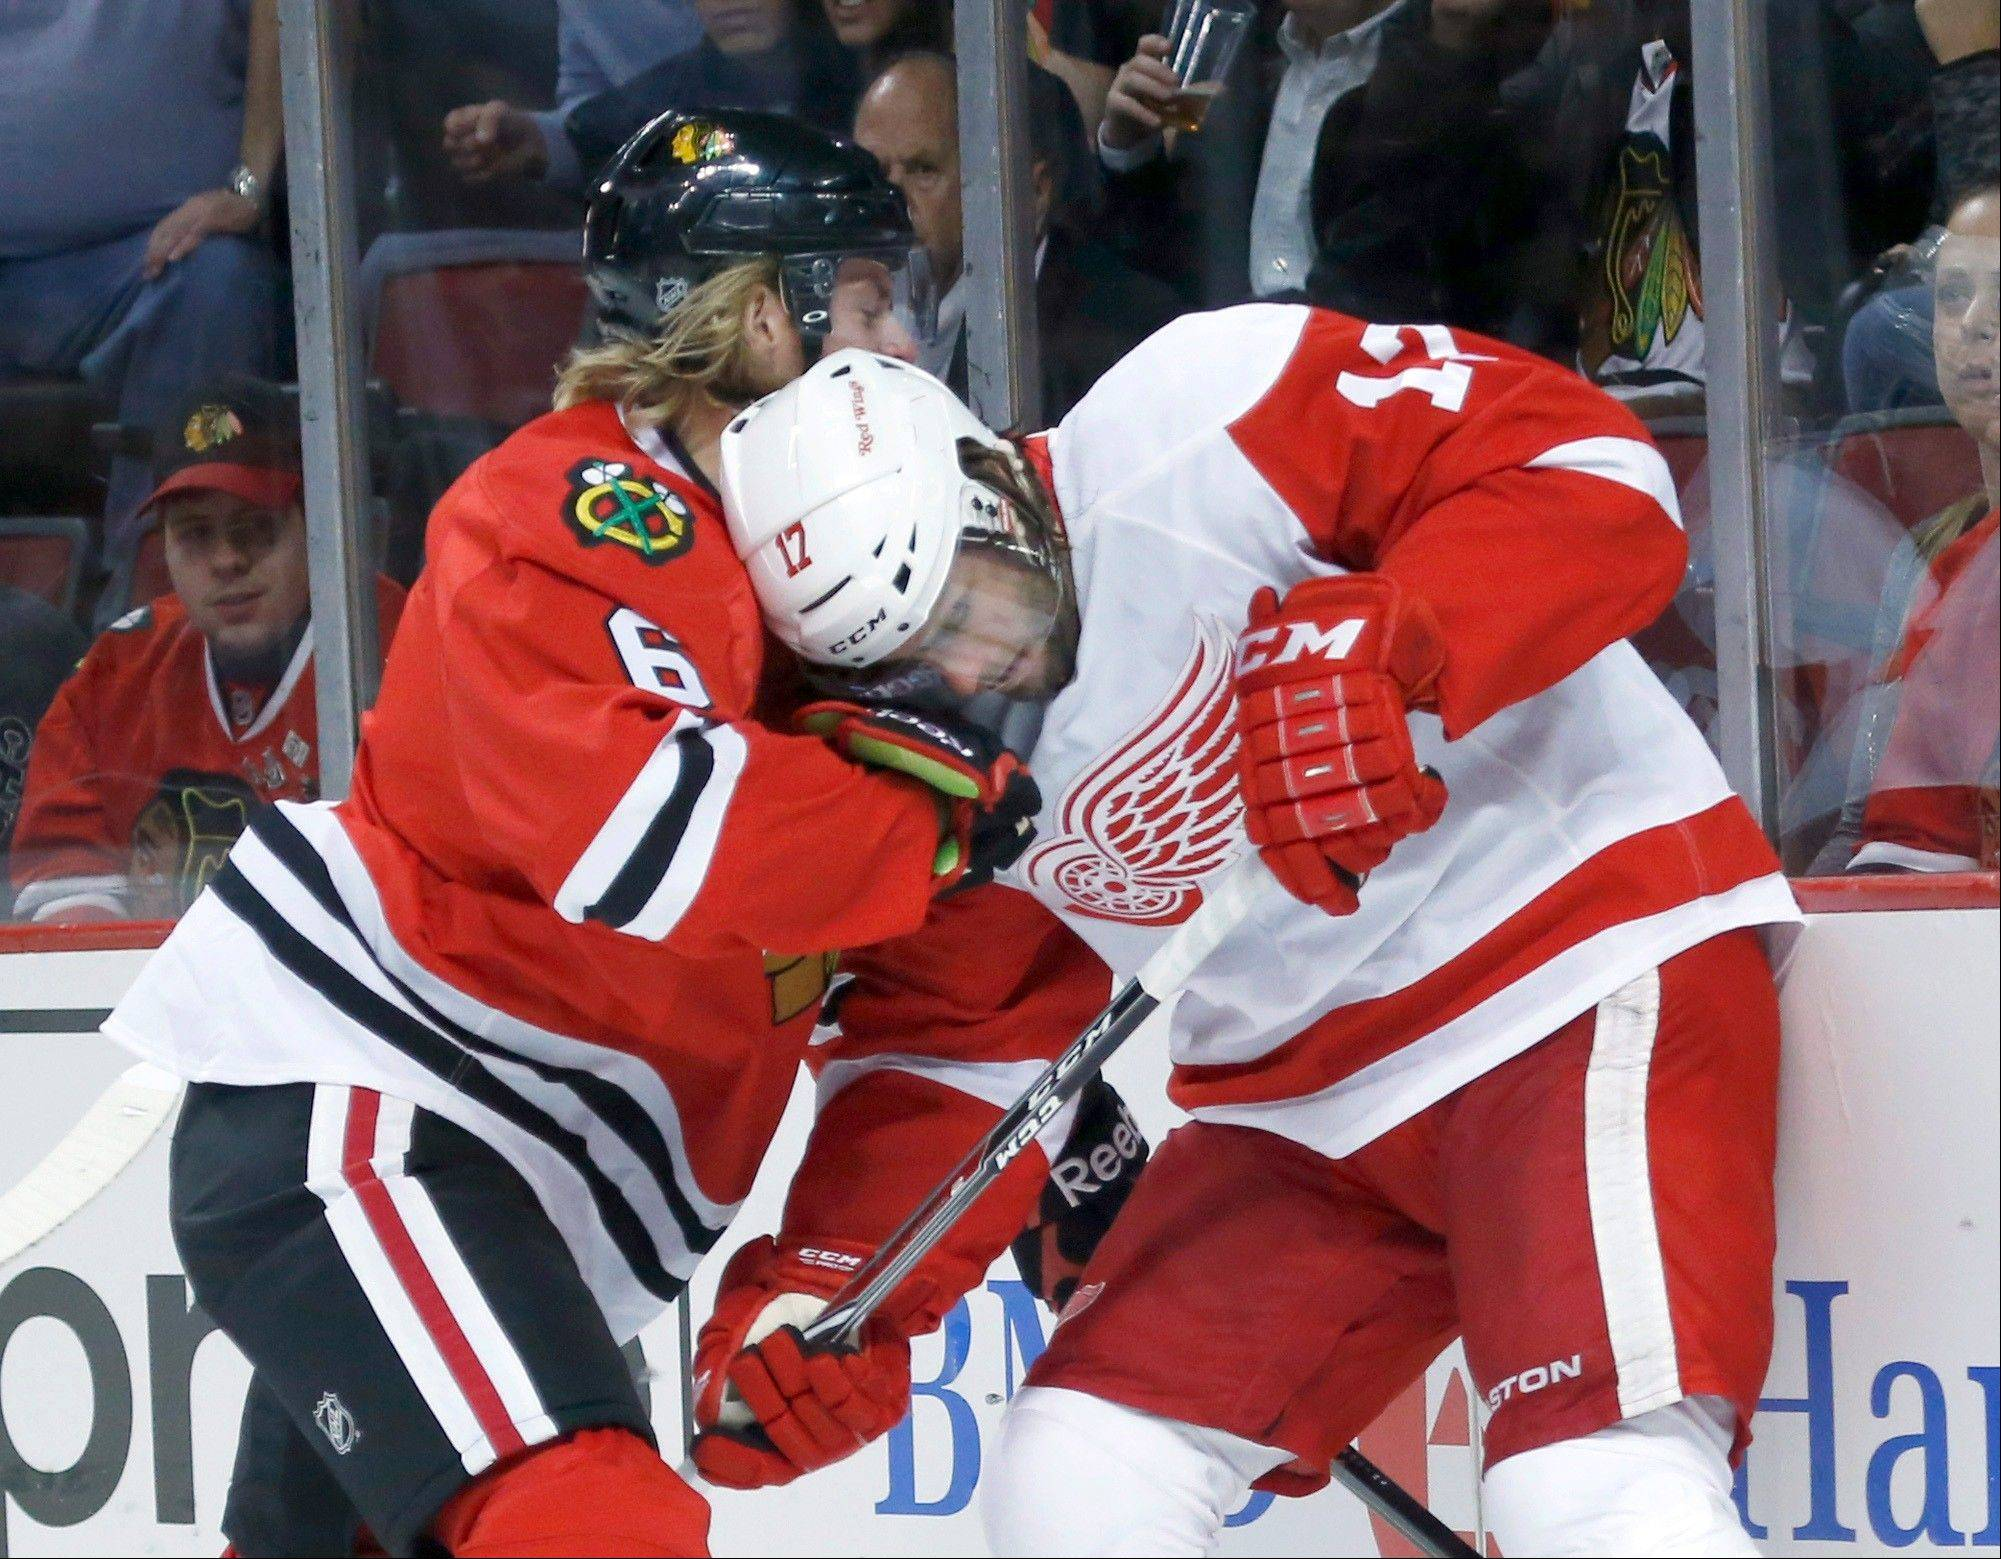 Blackhawks defenseman Mike Kostka, here battling Detroit right wing Patrick Eaves for the puck, earned the eighth spot on the Hawks defense after joining the team as a free agent.